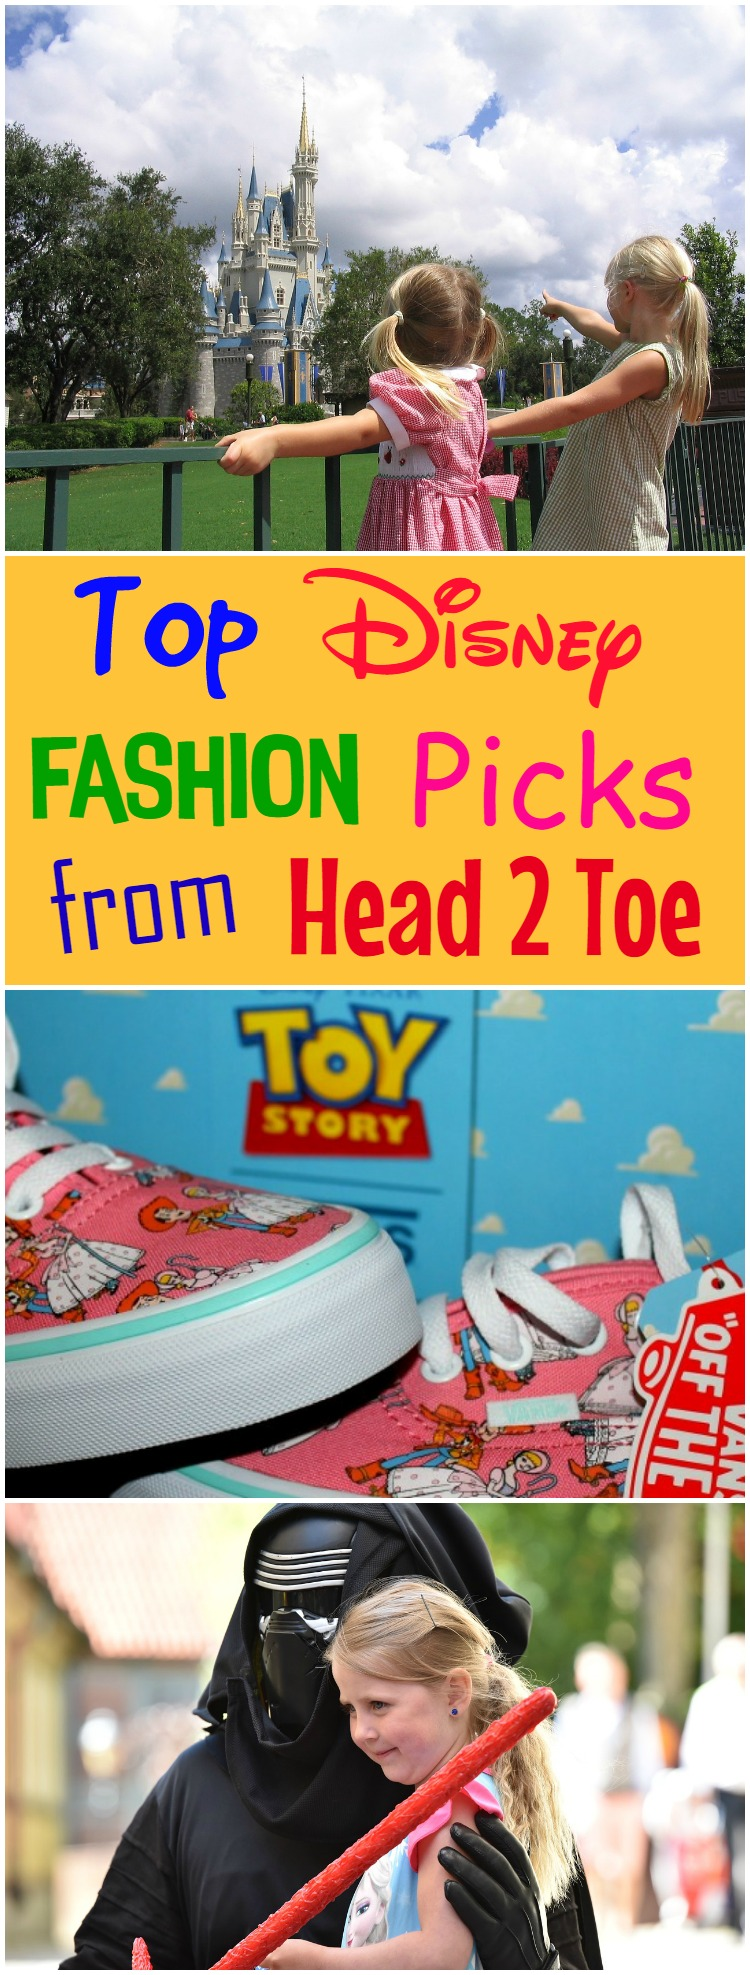 My Fashion Picks perfect while visiting Walt Disney World